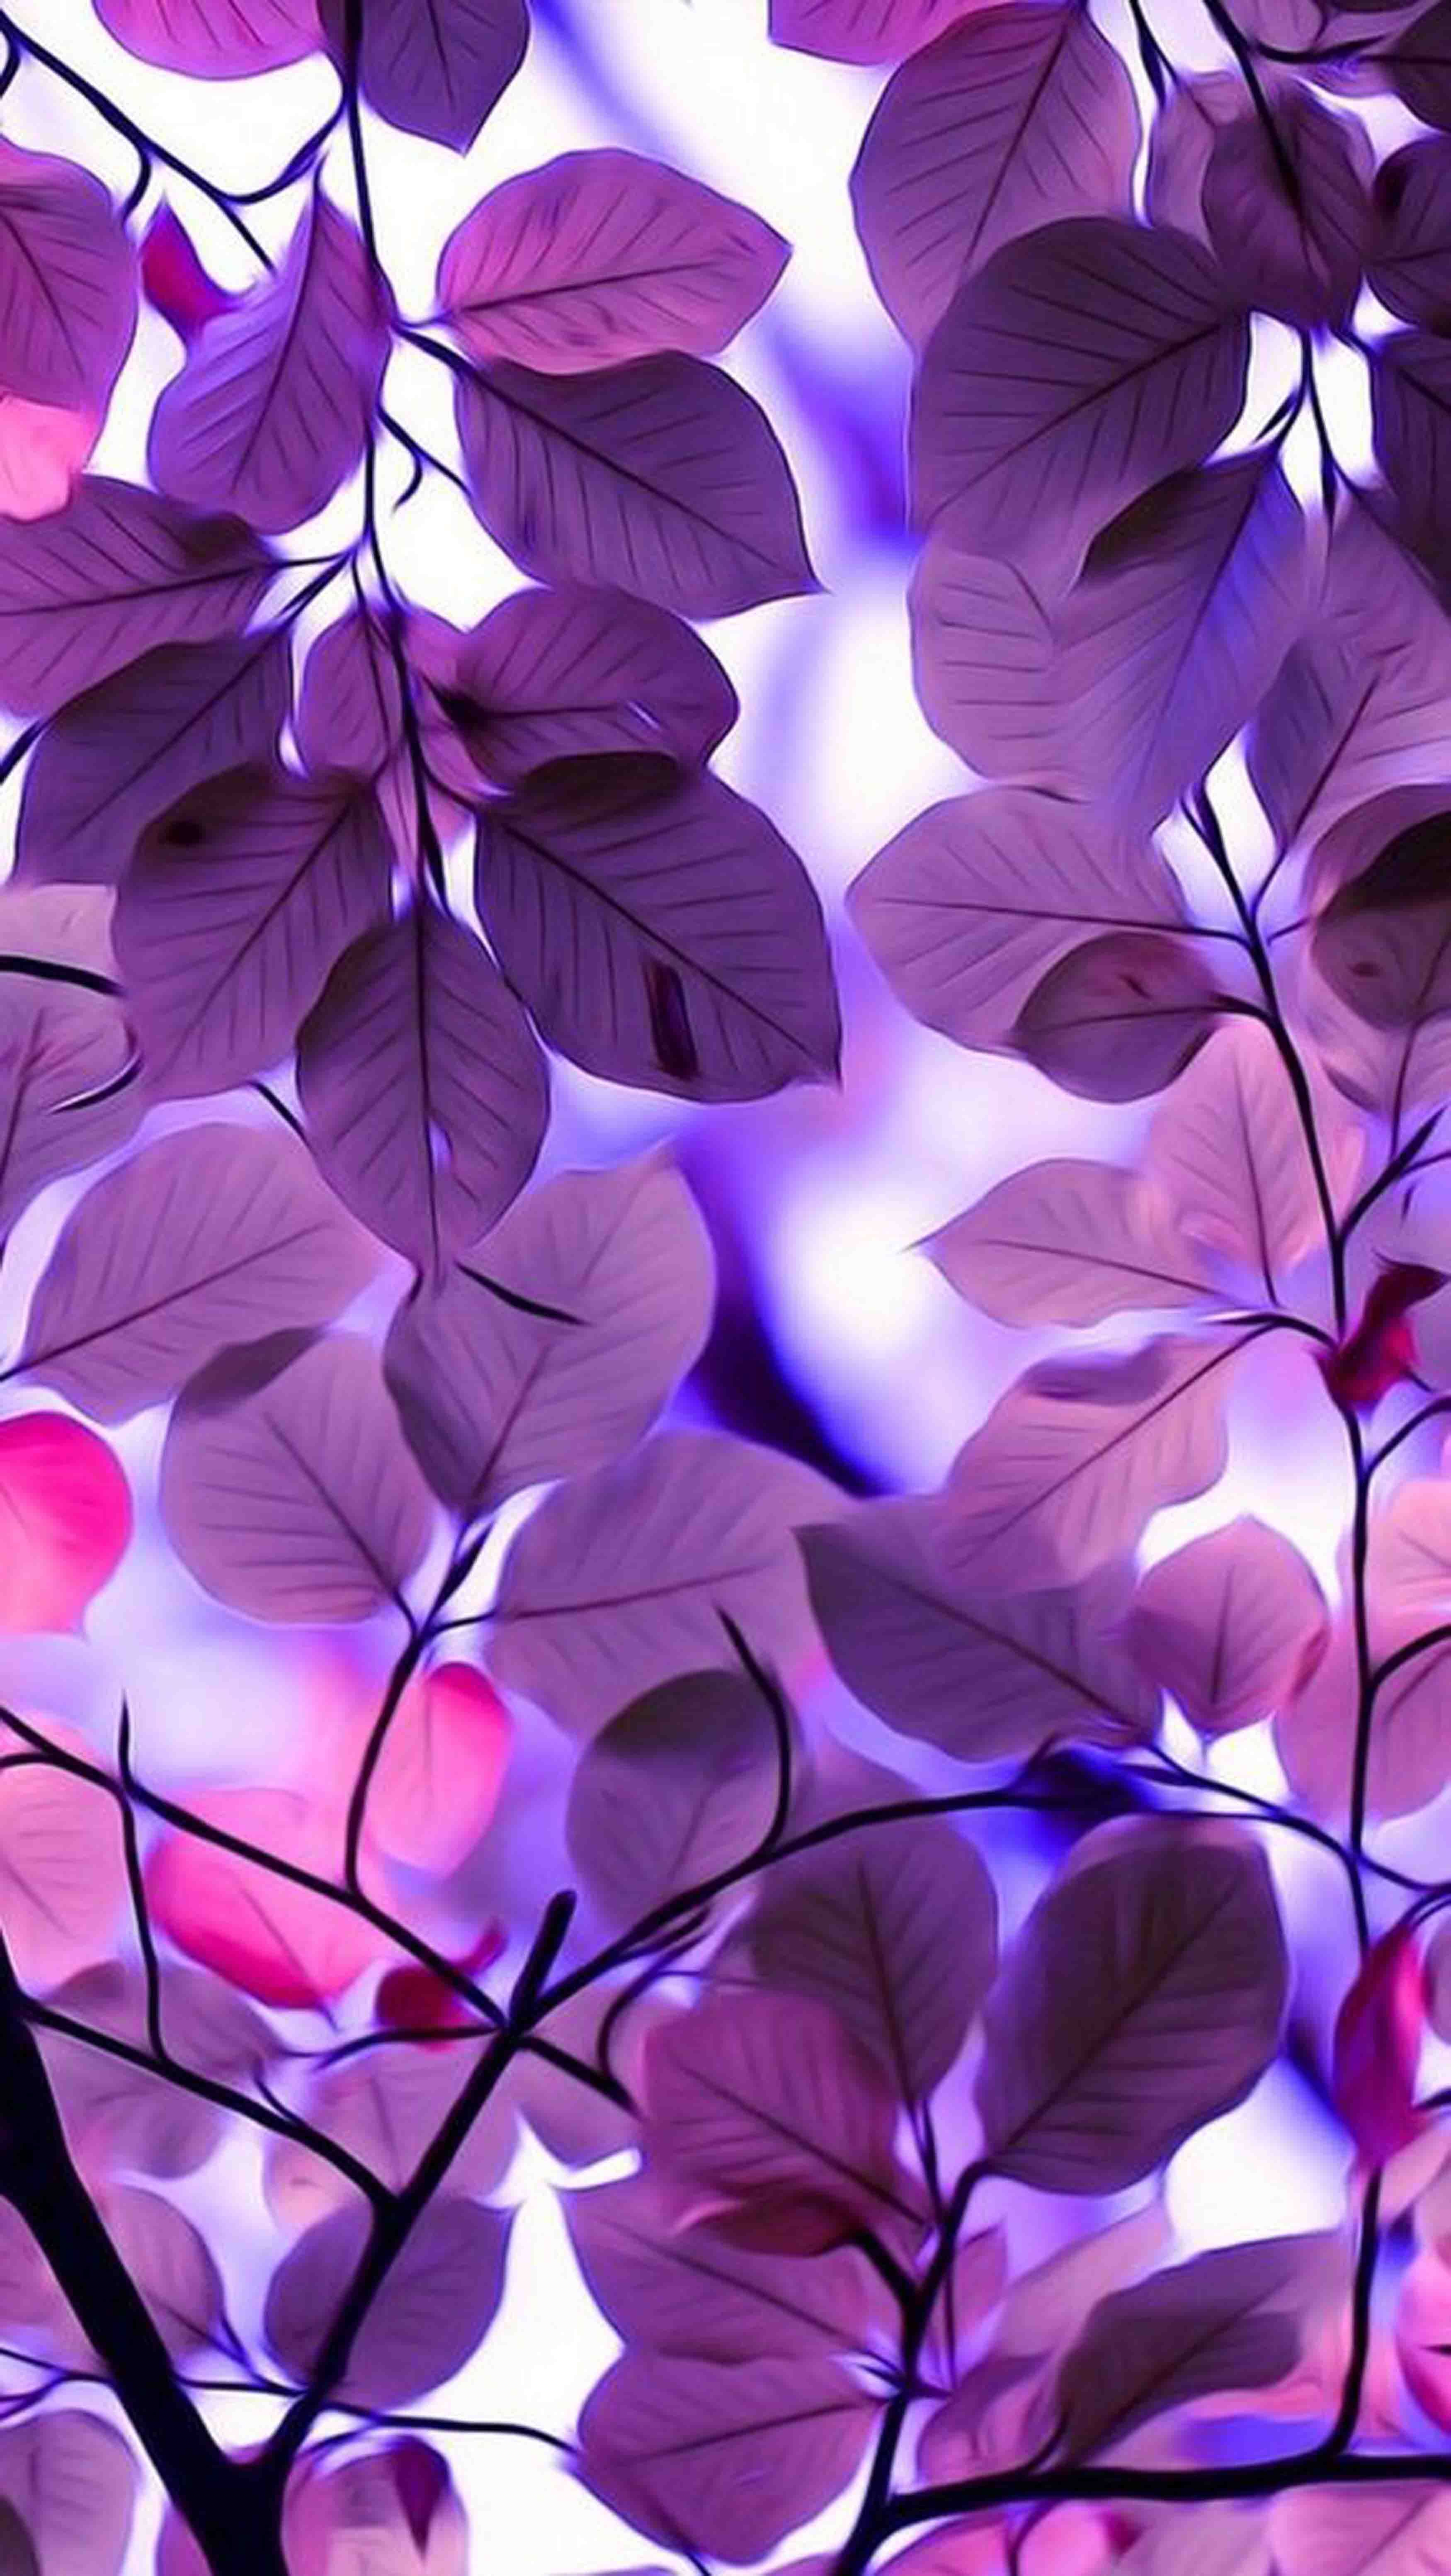 Wallpapers Android Purple Pattern Blue Flower Purple Wallpaper Phone Nature Iphone Wallpaper Flower Background Wallpaper Amazing light purple flower wallpaper